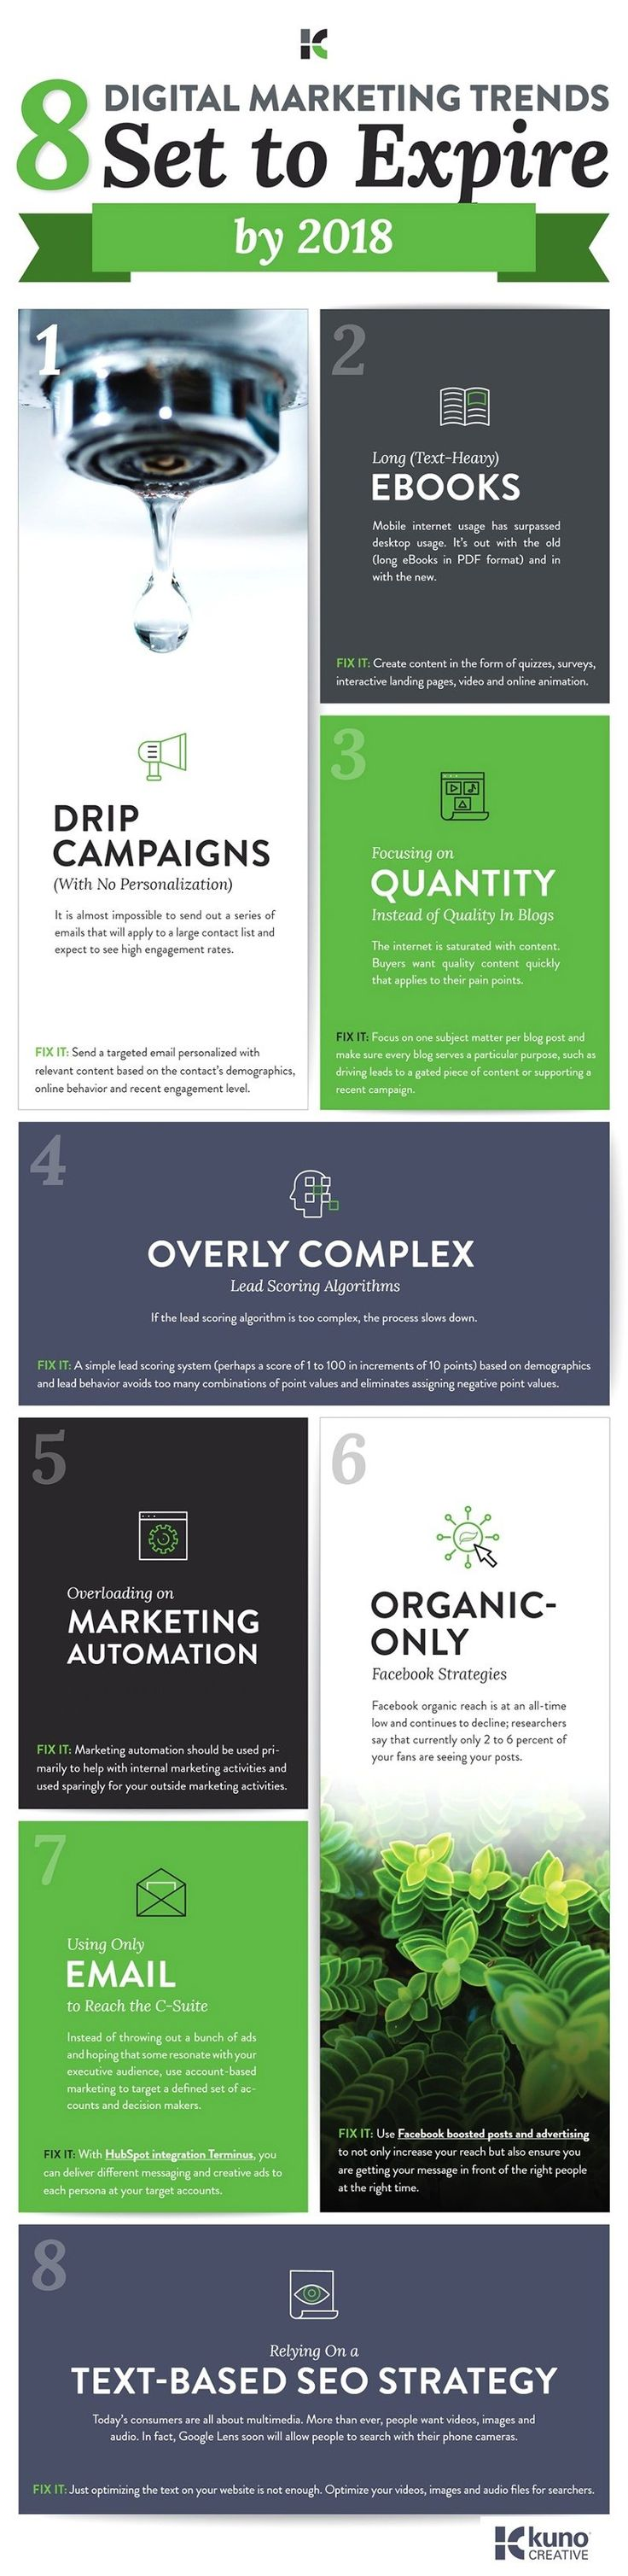 8 Digital Marketing Trends That Won't Work in 2018 [Infographic]